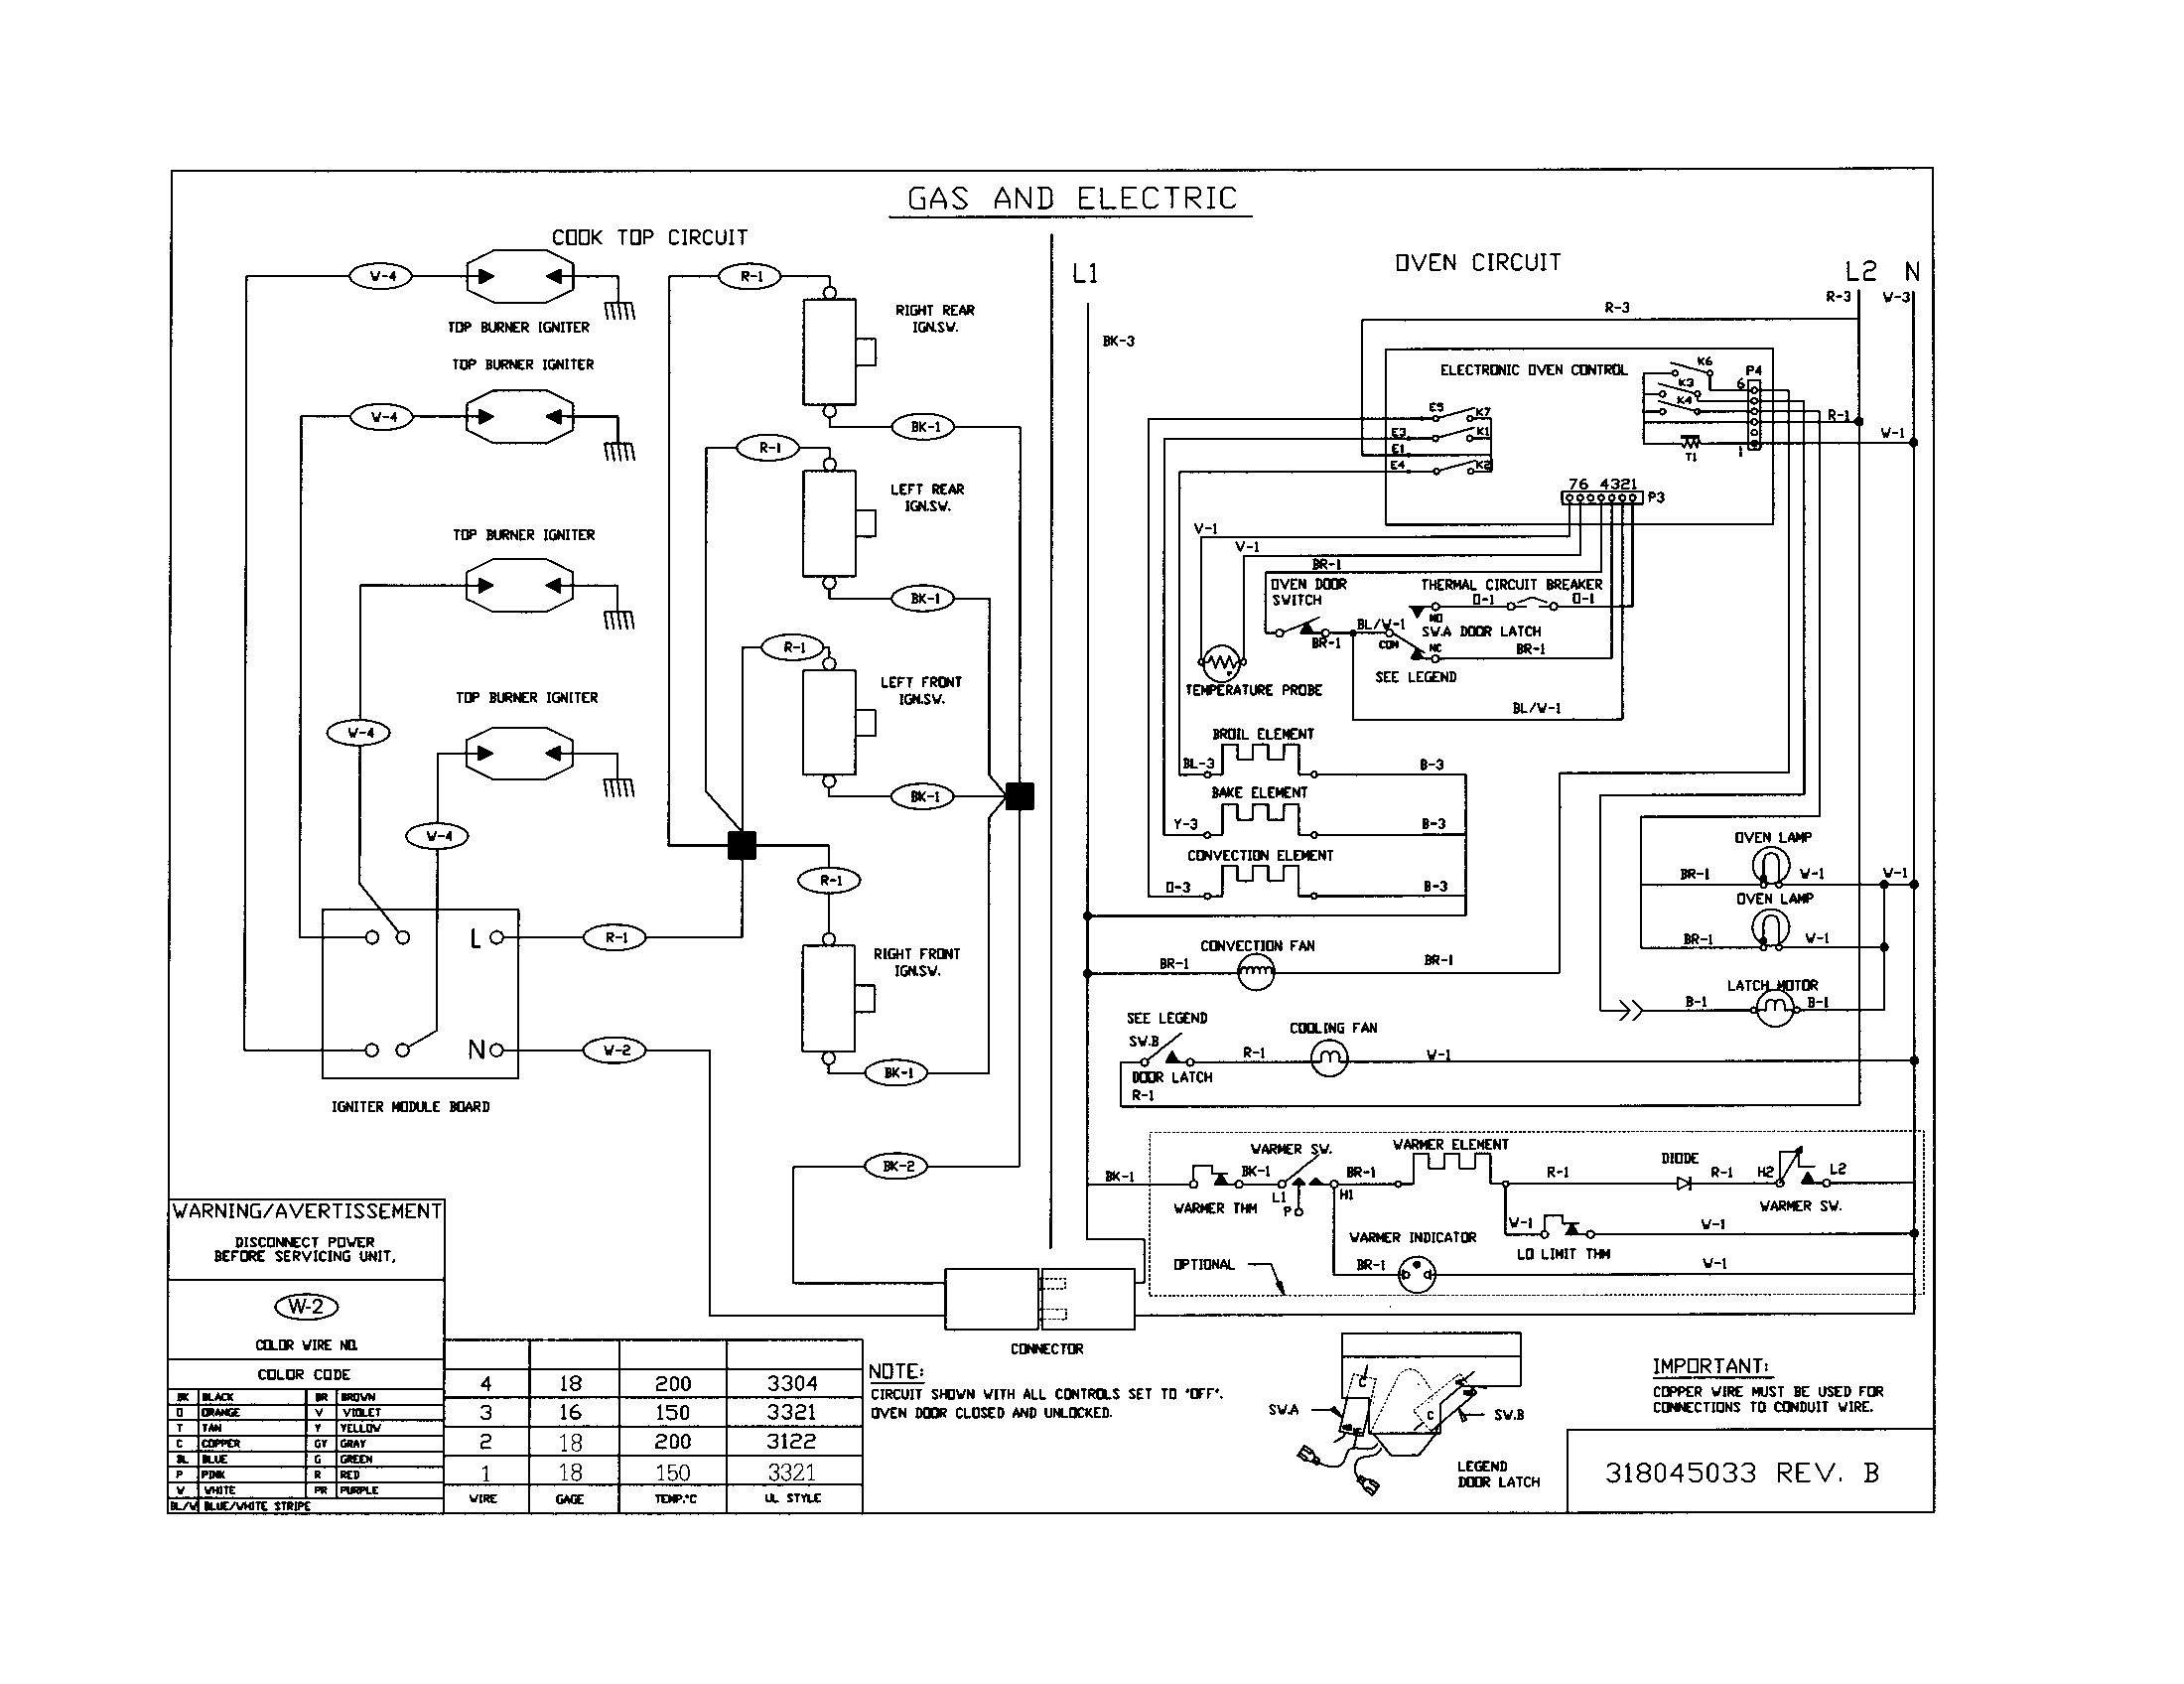 [DIAGRAM] L14 20 Plug 3 Wire 240 Wiring Diagram FULL